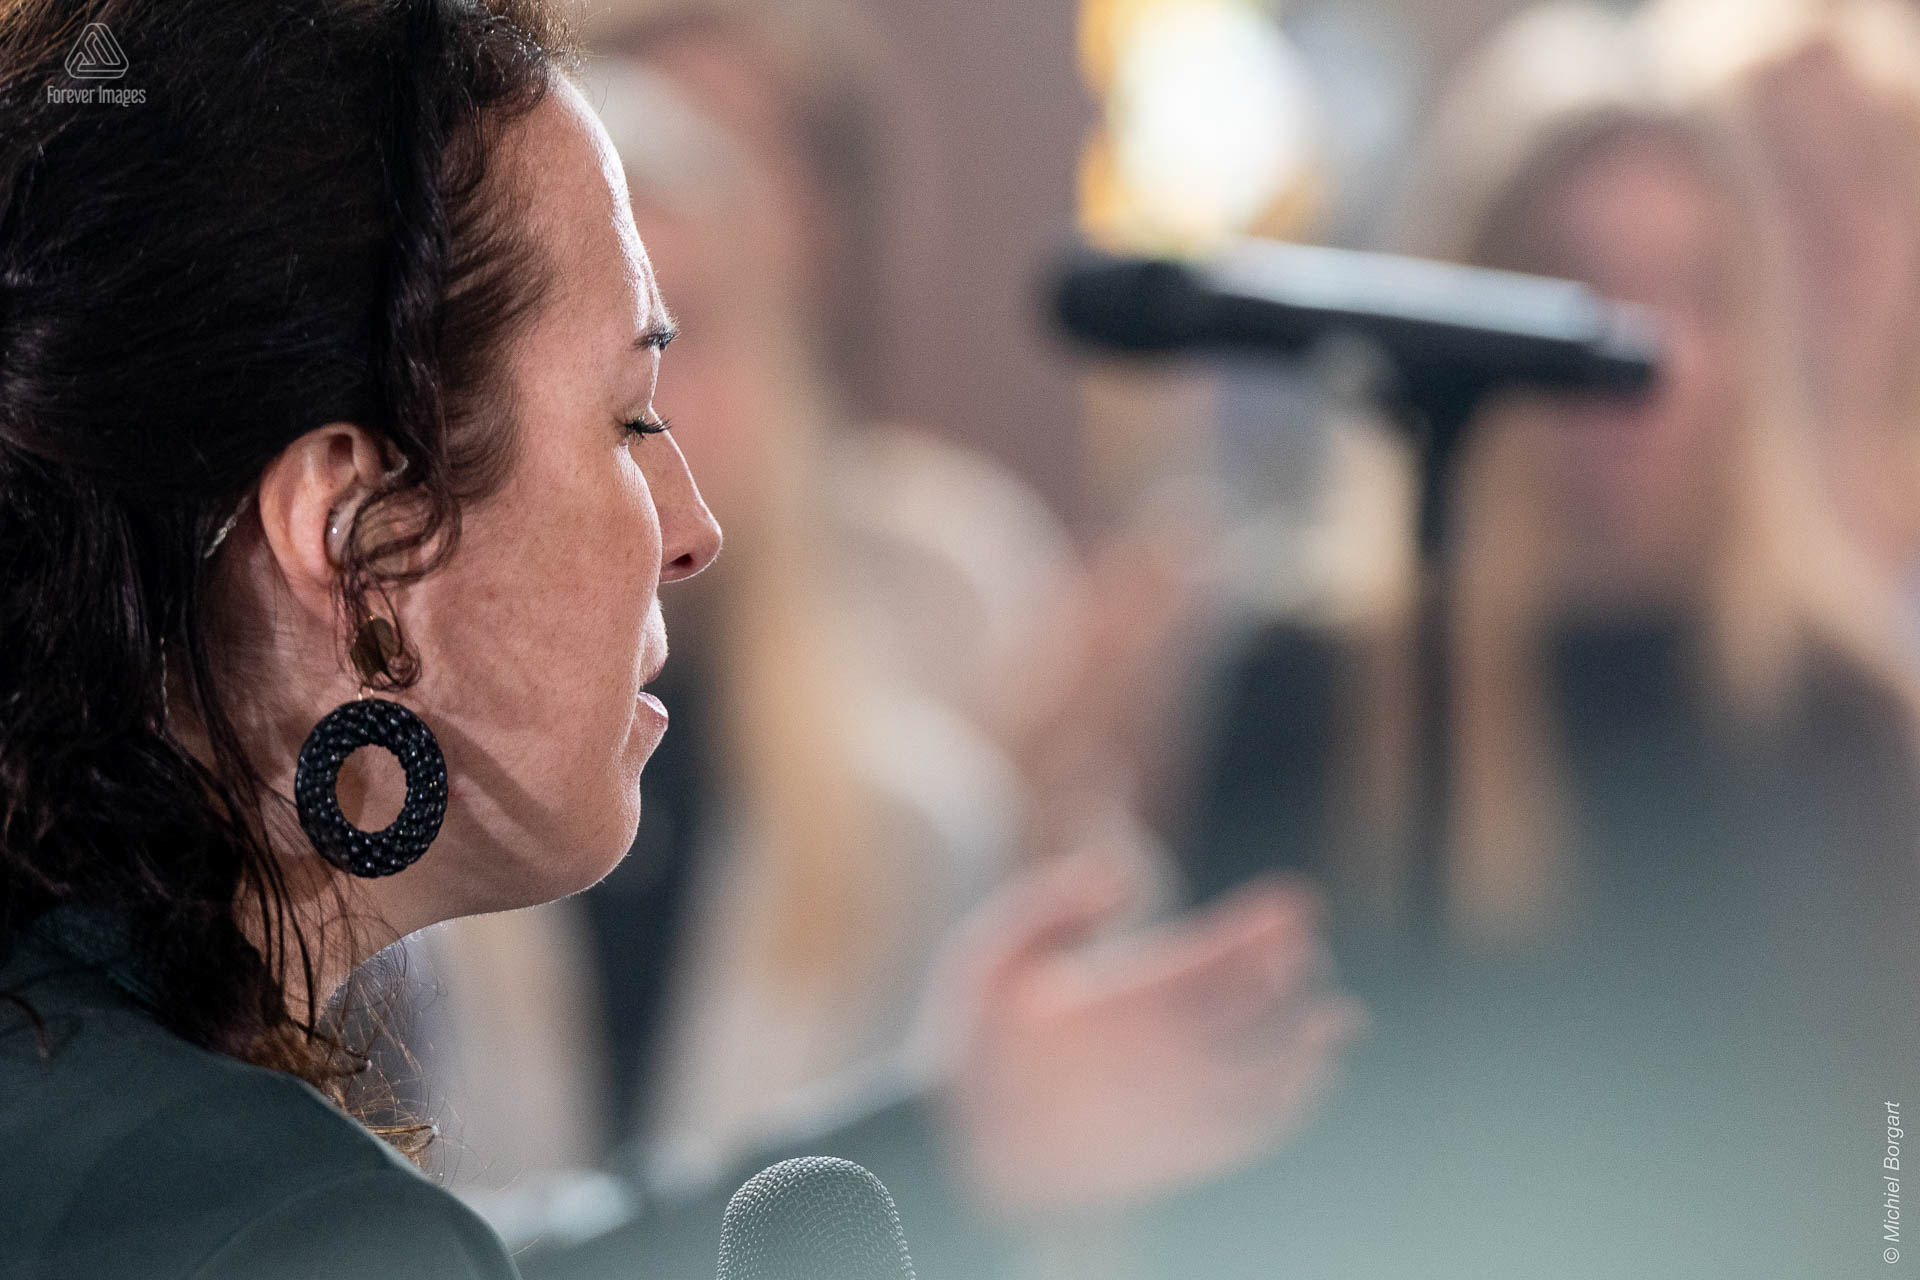 Portrait photo singer concert worship | InSalvation Gouwekerk Gouda Sifra Bekx | Photographer Michiel Borgart - Forever Images.